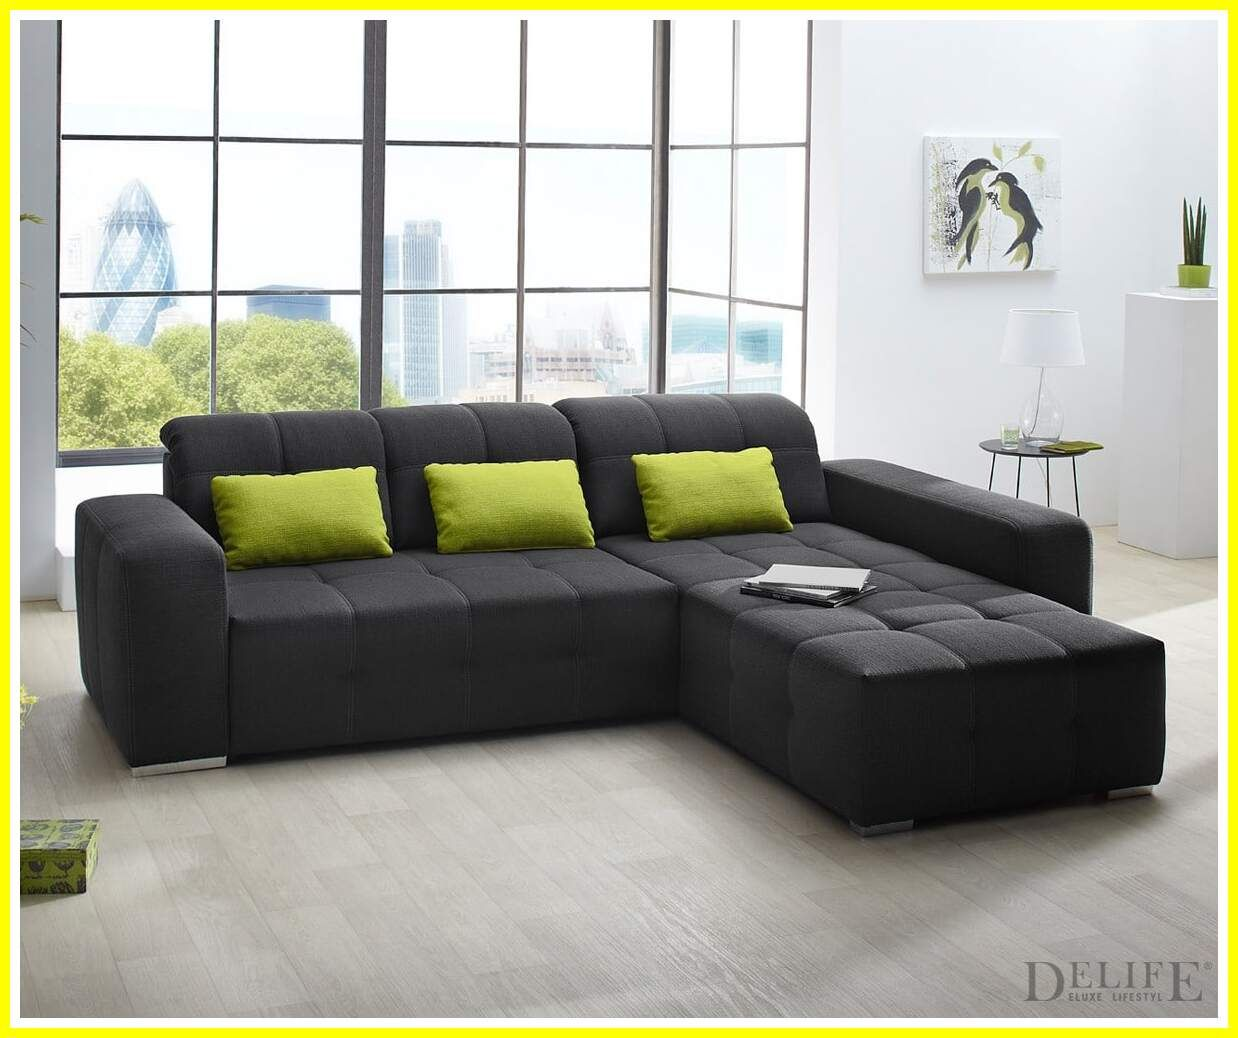 sofa Sectional eck sofa-#sofa #Sectional #eck #sofa Please Click Link To Find More Reference,,, ENJOY!!